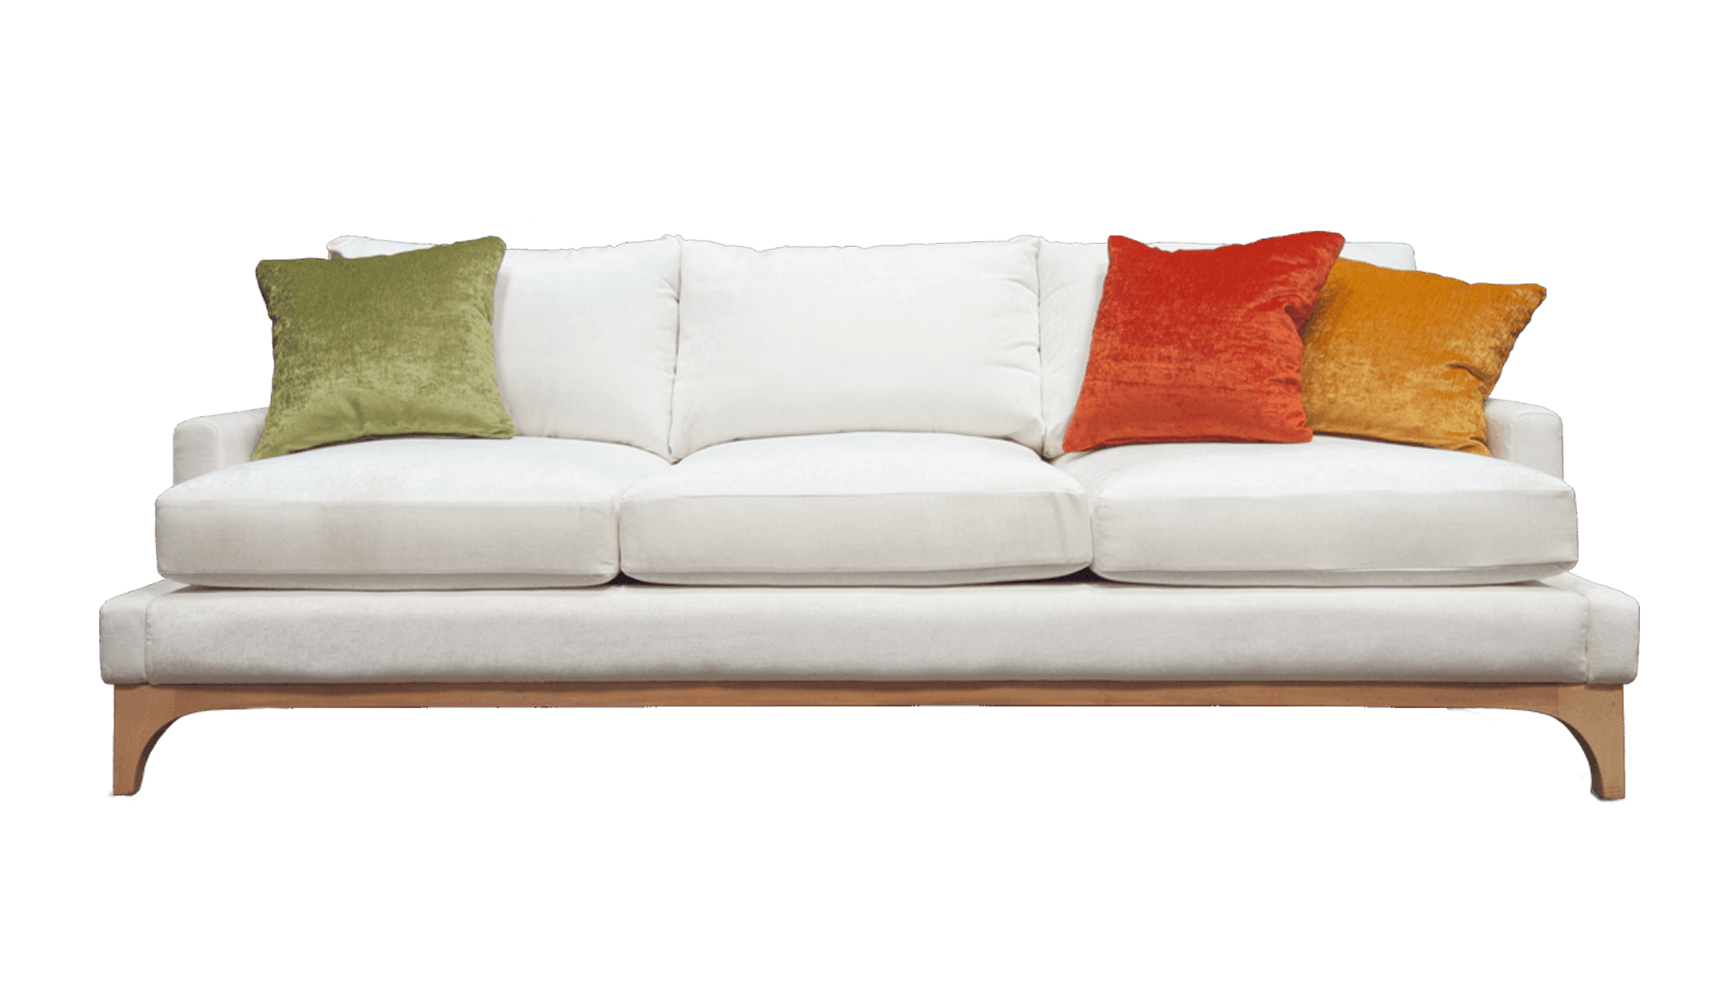 White couch png. Furniture divan chair fabric